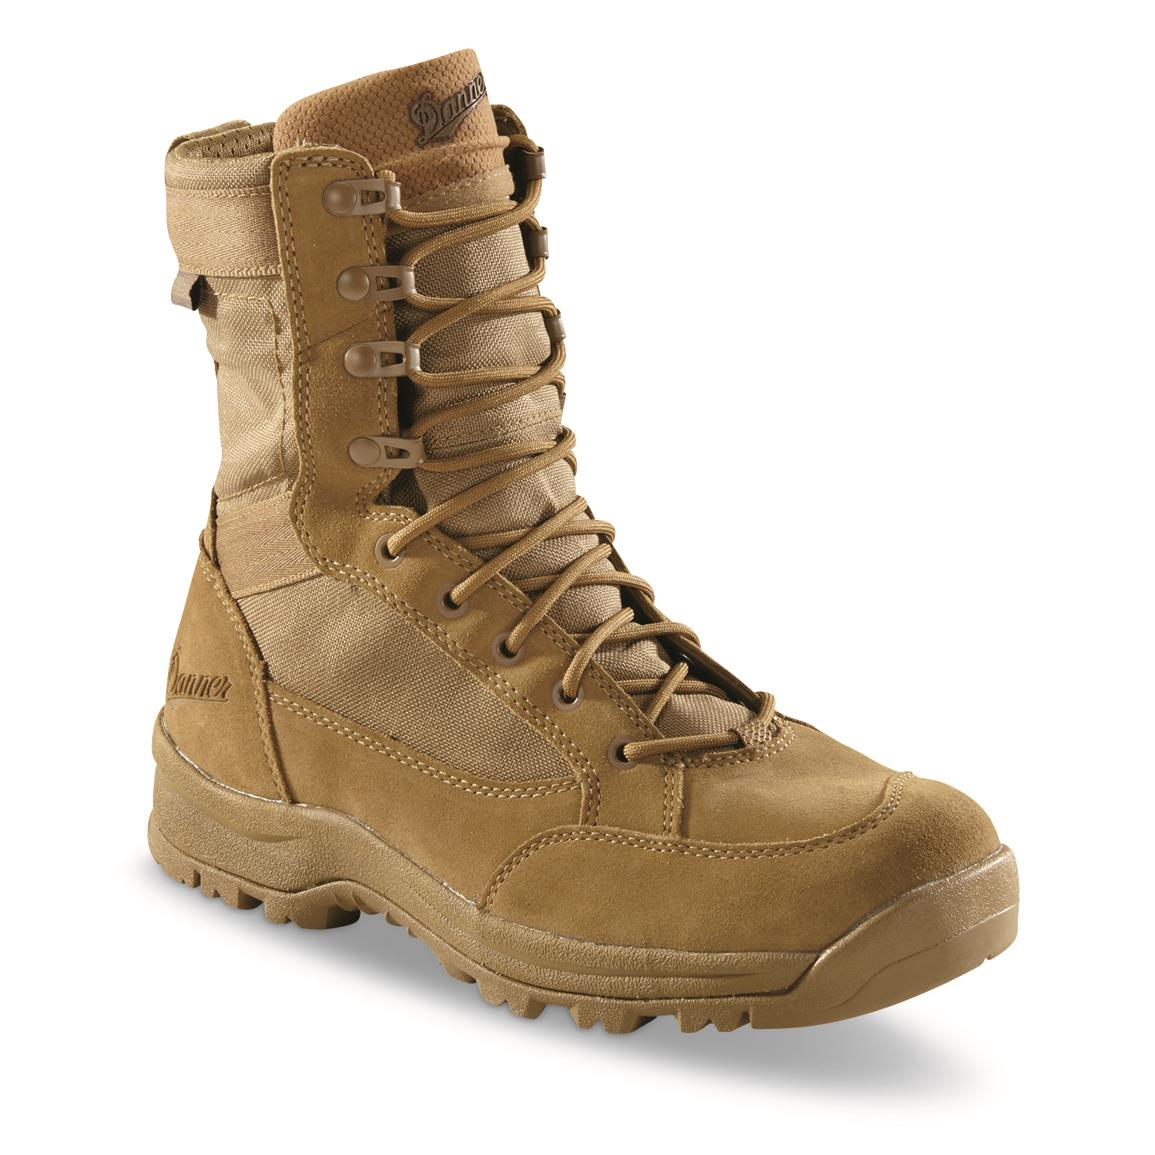 Danner Men's Tanicus Tactical Waterproof Desert Boots, Mojave